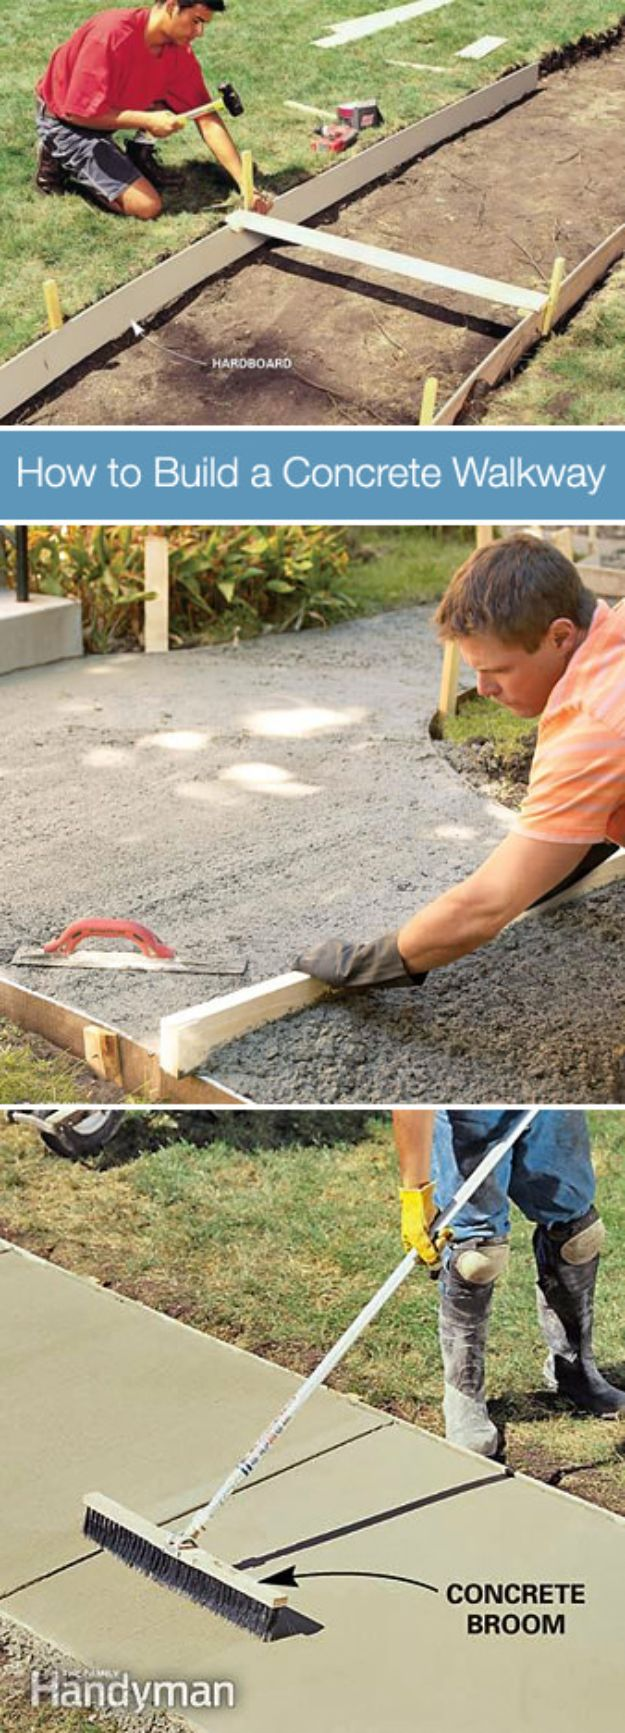 DIY Walkways - Build A Concrete Walkway - Do It Yourself Walkway Ideas for Paths to The Front Door and Backyard - Cheap and Easy Pavers and Concrete Path and Stepping Stones - Wood and Edging, Lights, Backyard and Patio Walks With Gravel, Sand, Dirt and Brick http://diyjoy.com/diy-walkways